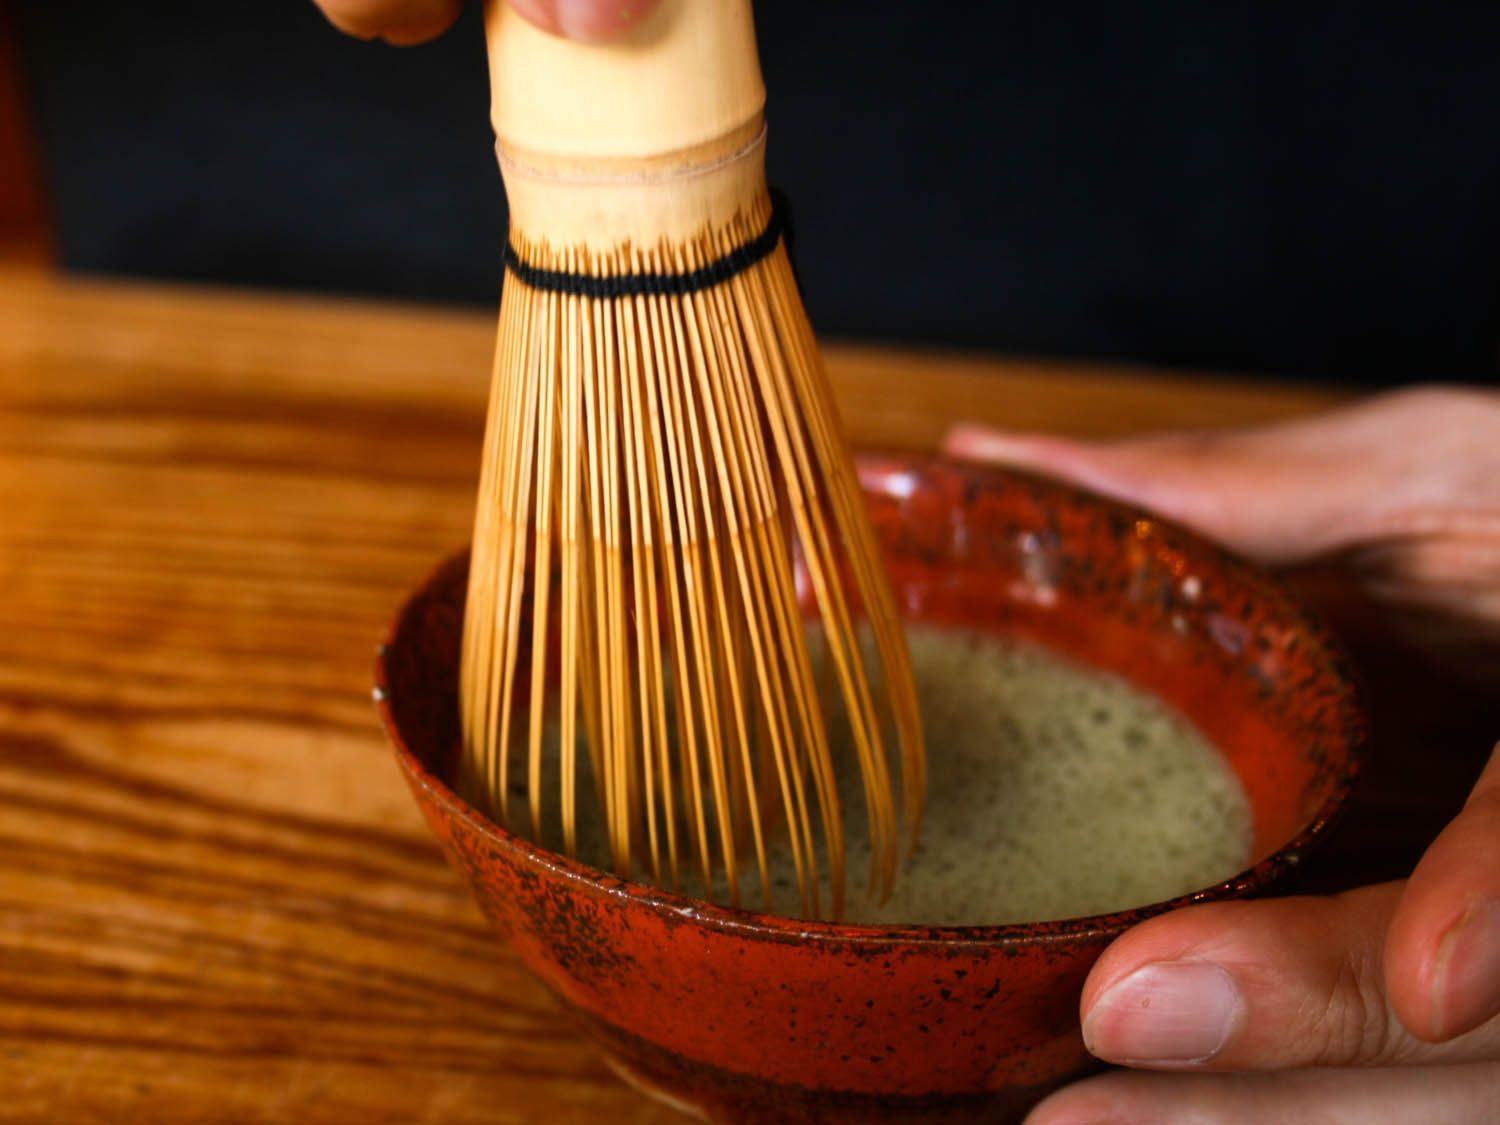 The Secrets Behind Making Incredible Matcha What is